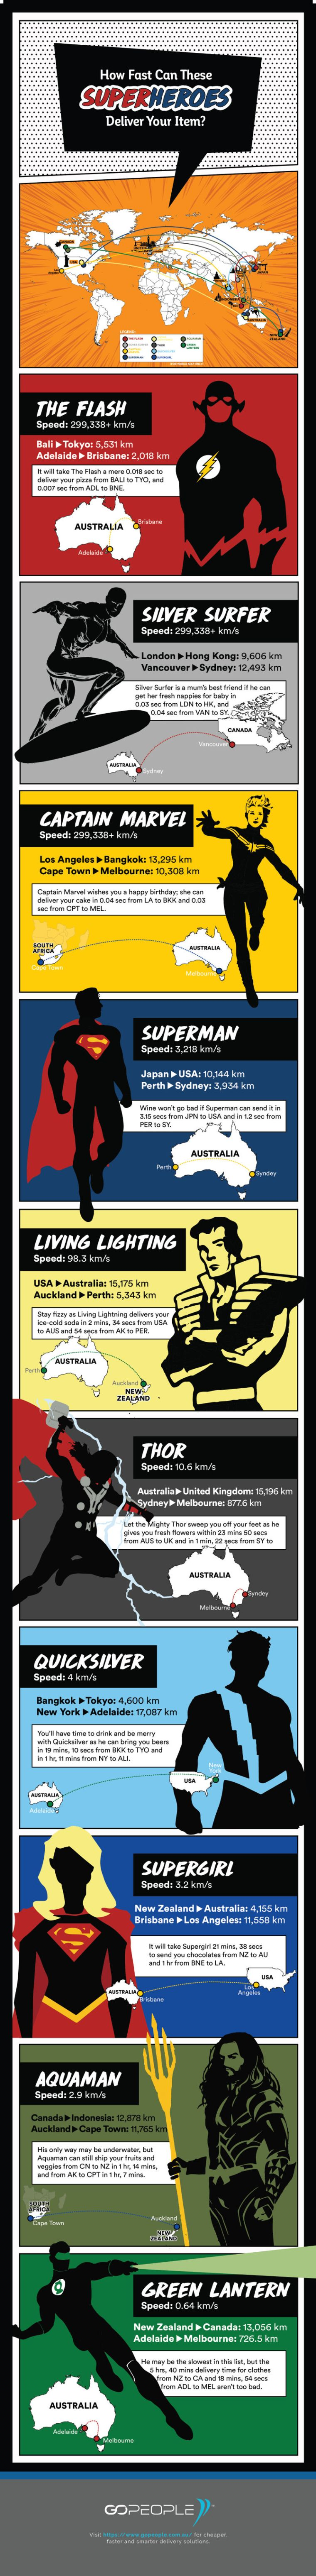 How fast can superheroes deliver your item - infographic